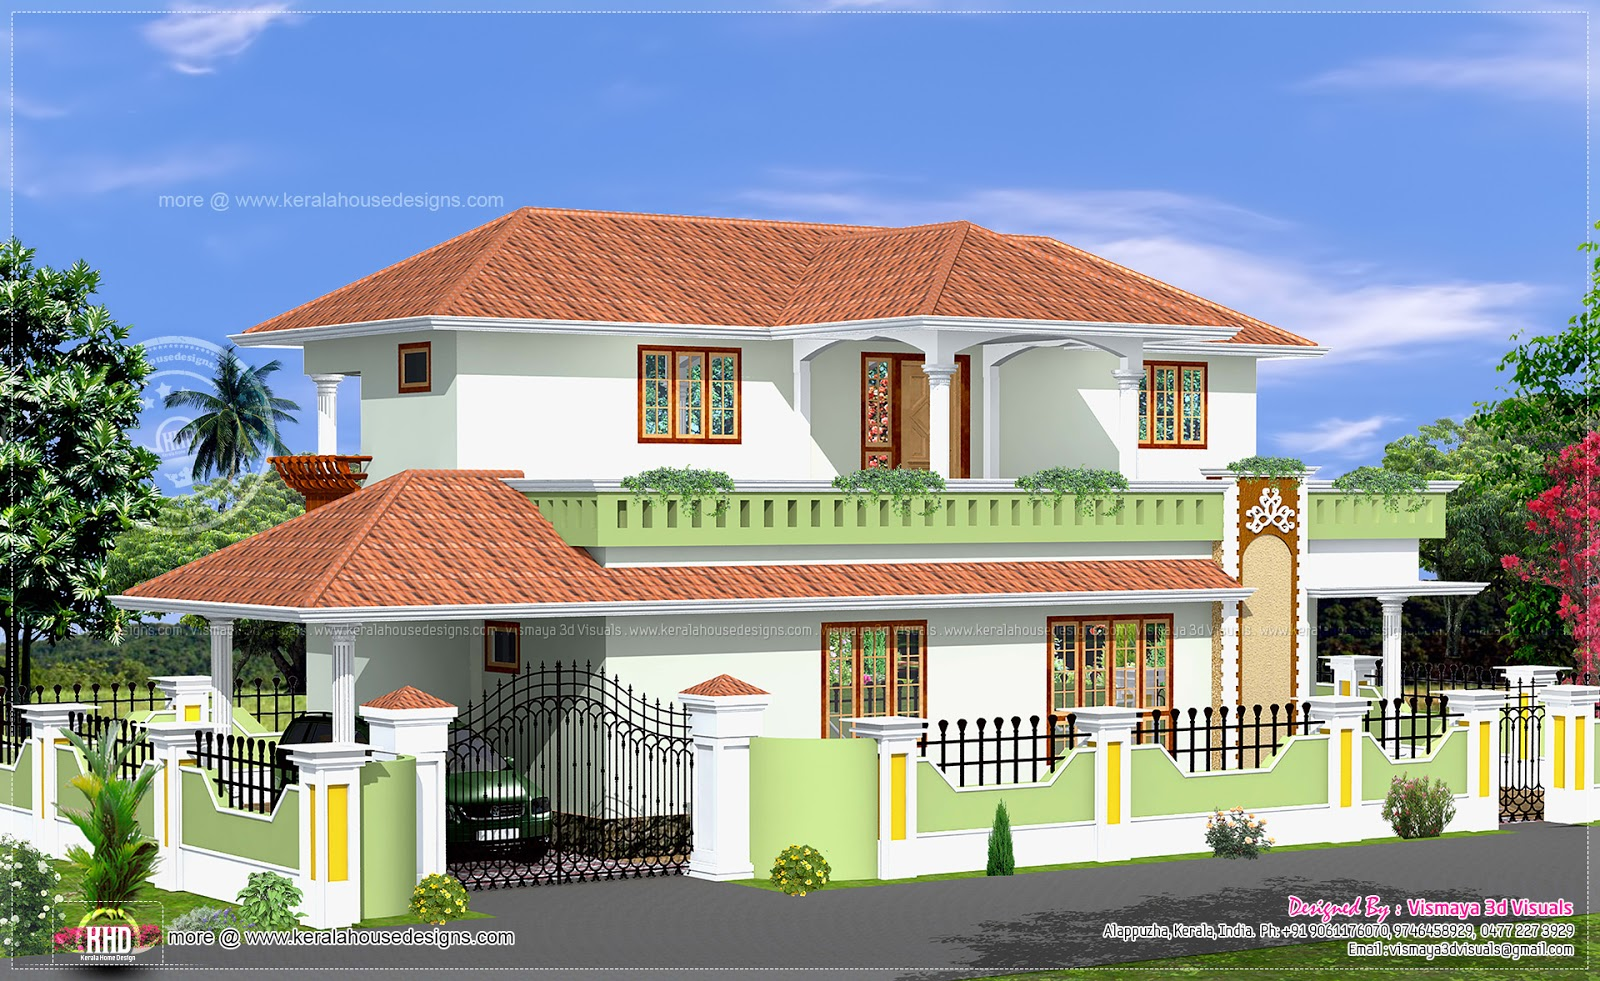 Simple house designs kerala style home design and style for Simple modern house models